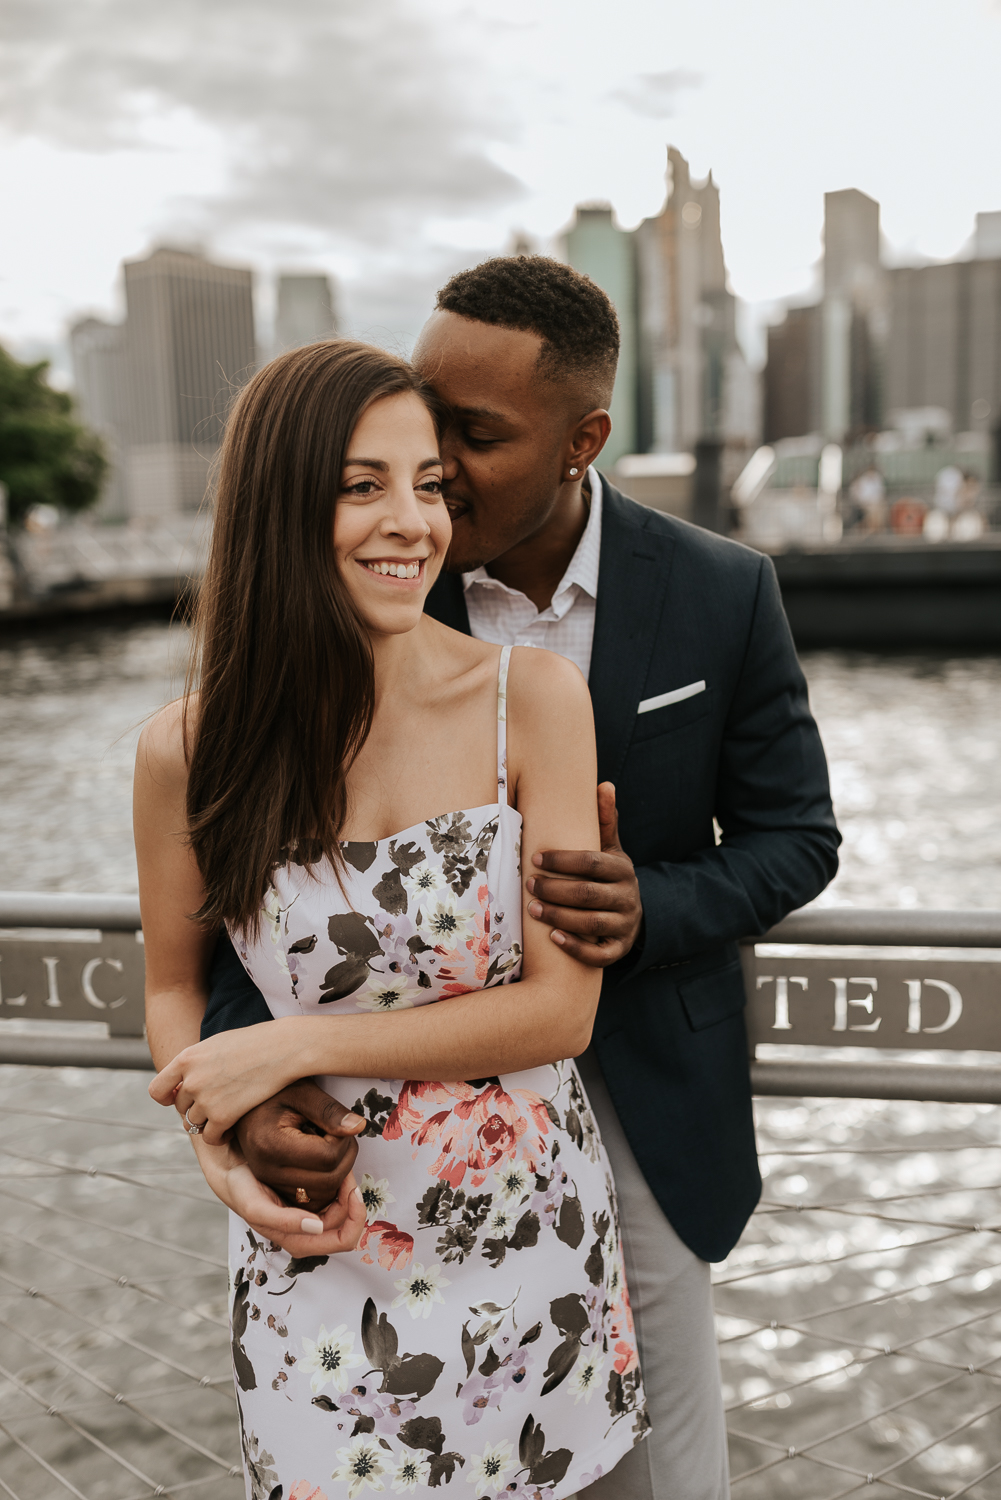 East Coast Engagement, Anniversary and Adventure Photographer | MORGAN ELLIS | Couples Photography | Brooklyn, NYC Engagement Session